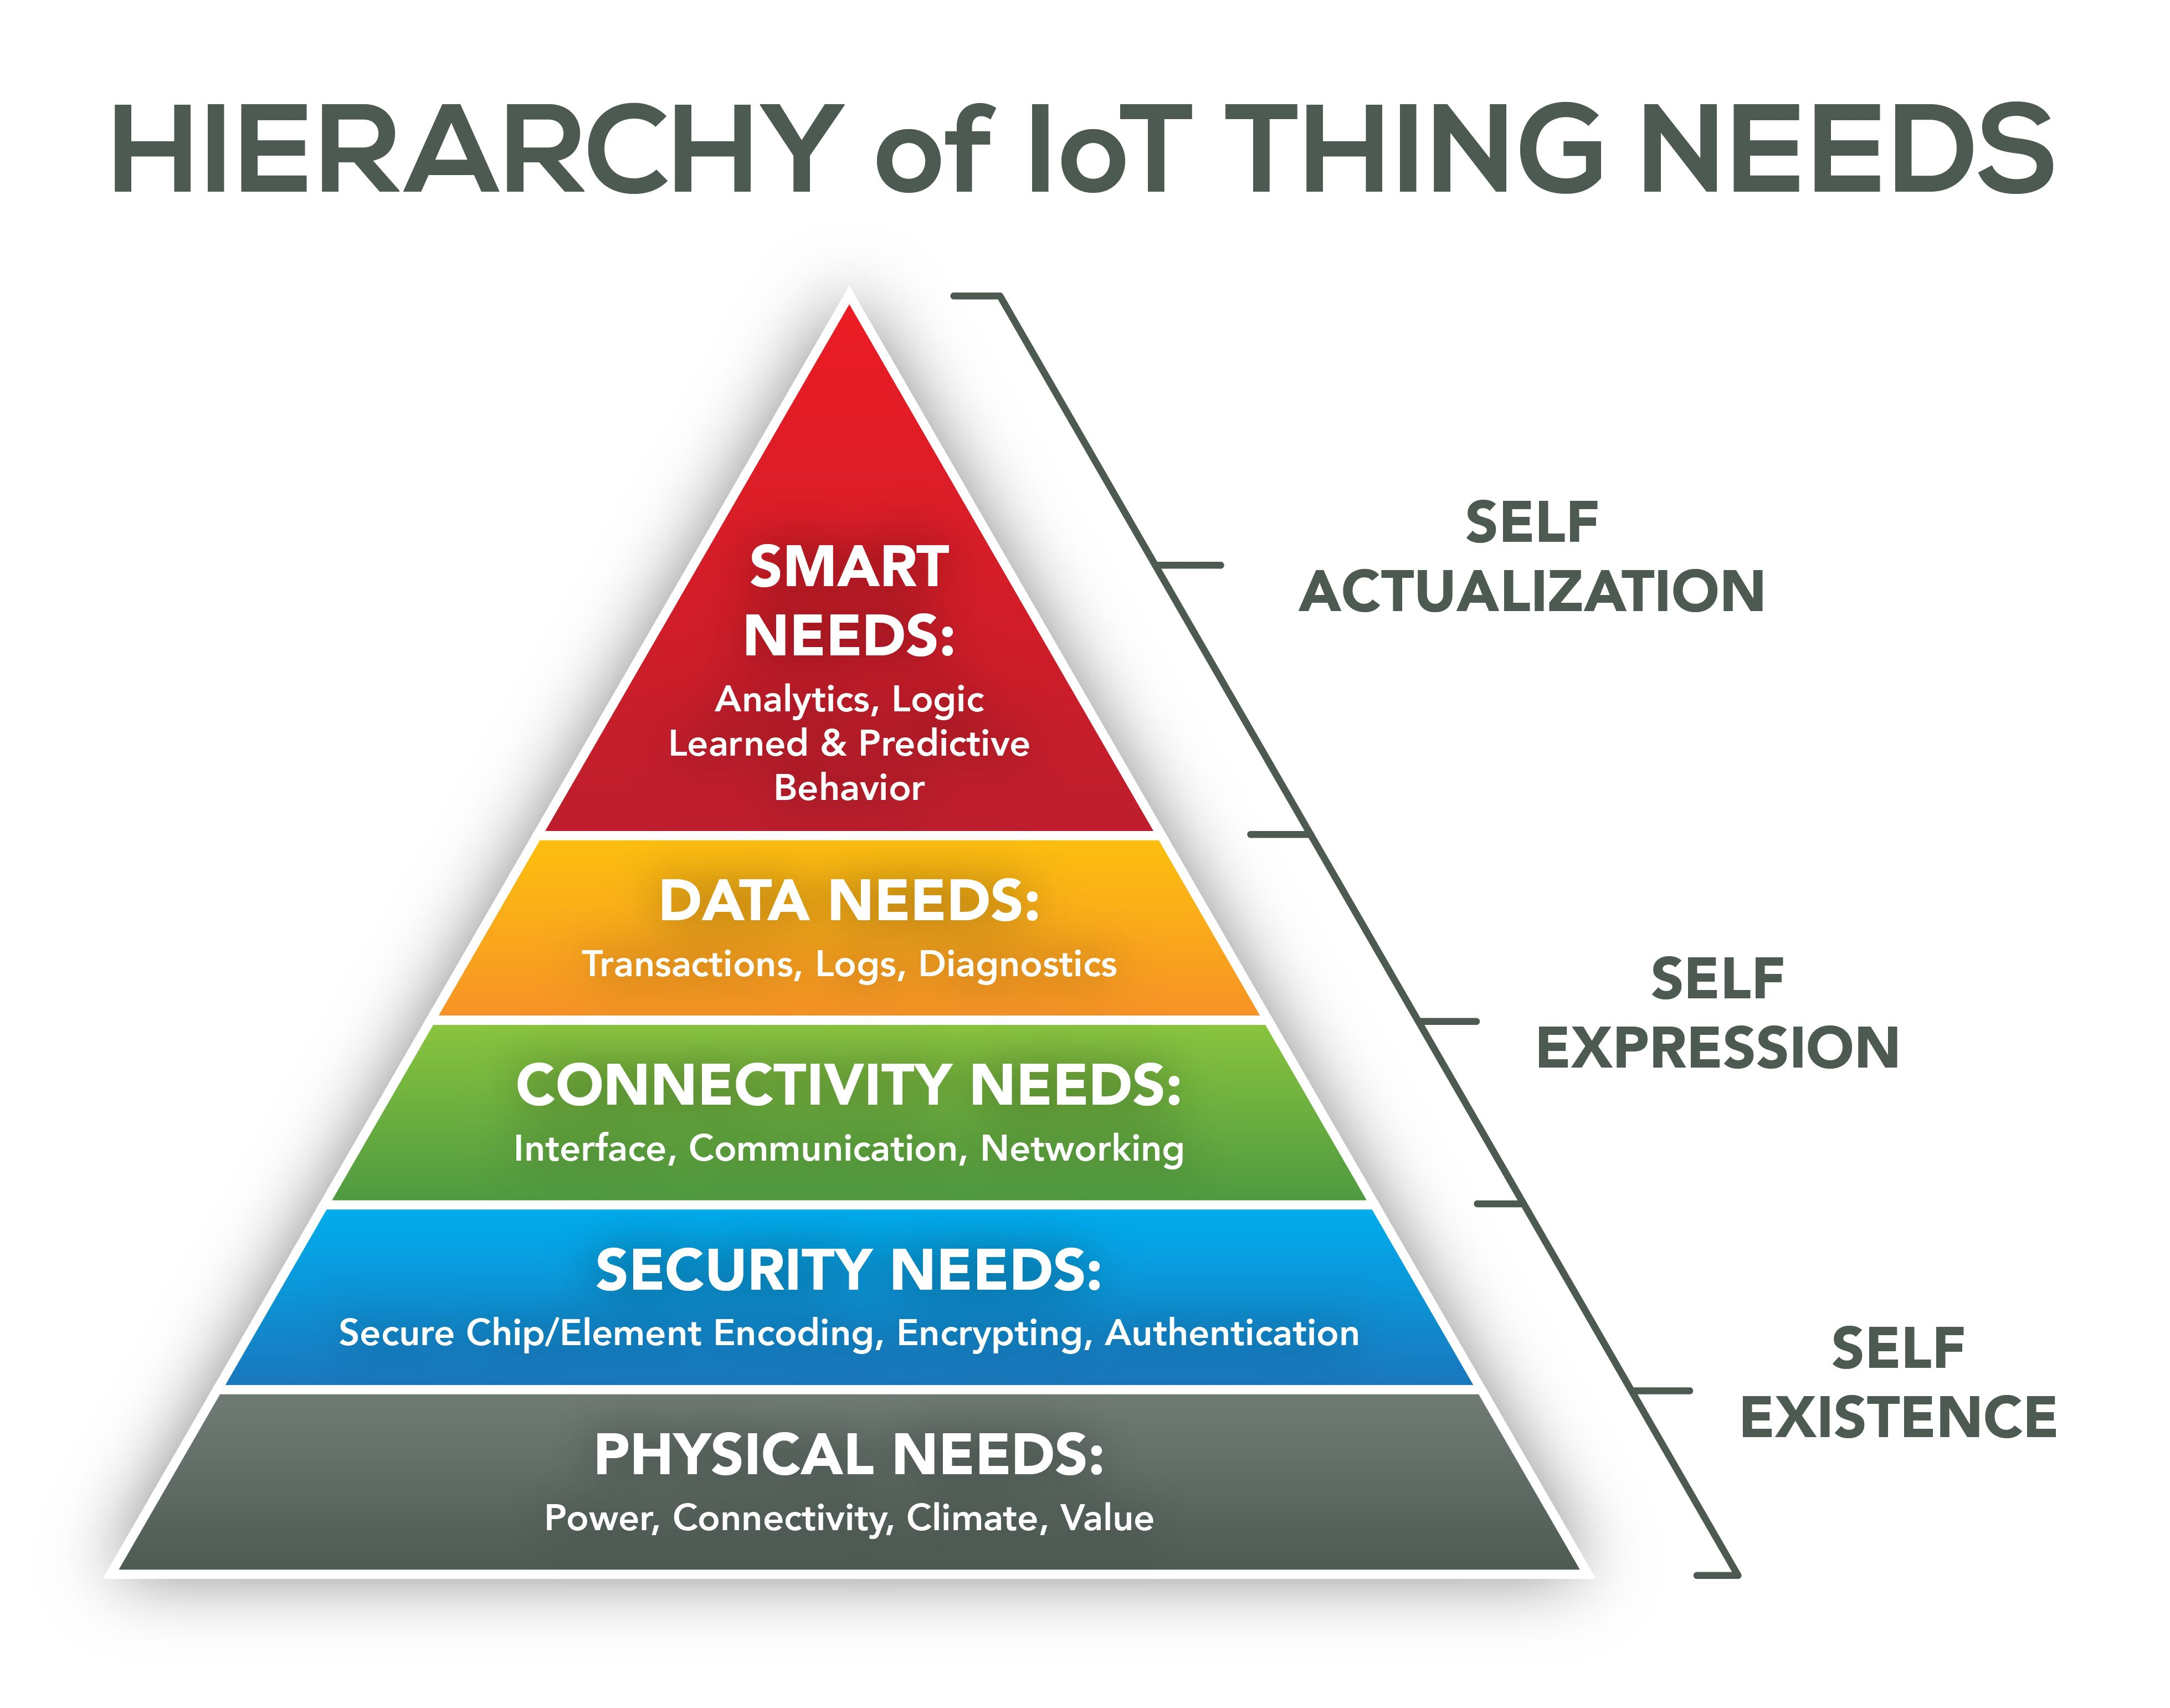 the hierarchy of iot thing needs